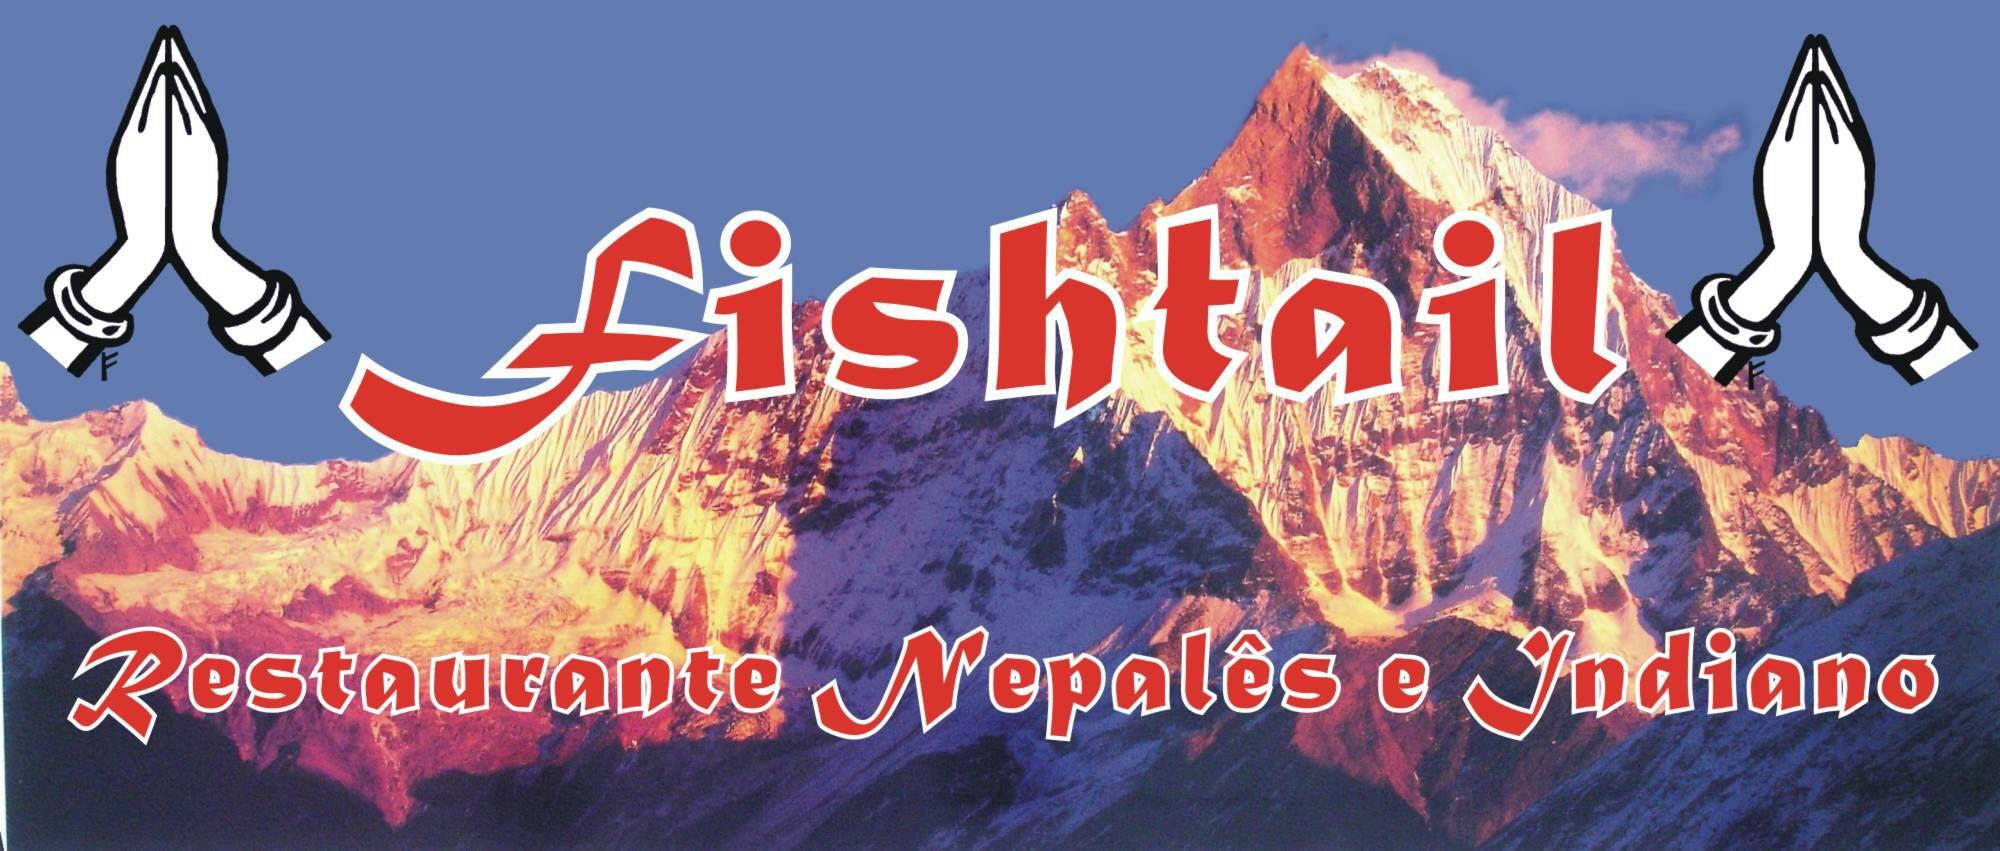 Restaurante Fishtail Tandoori